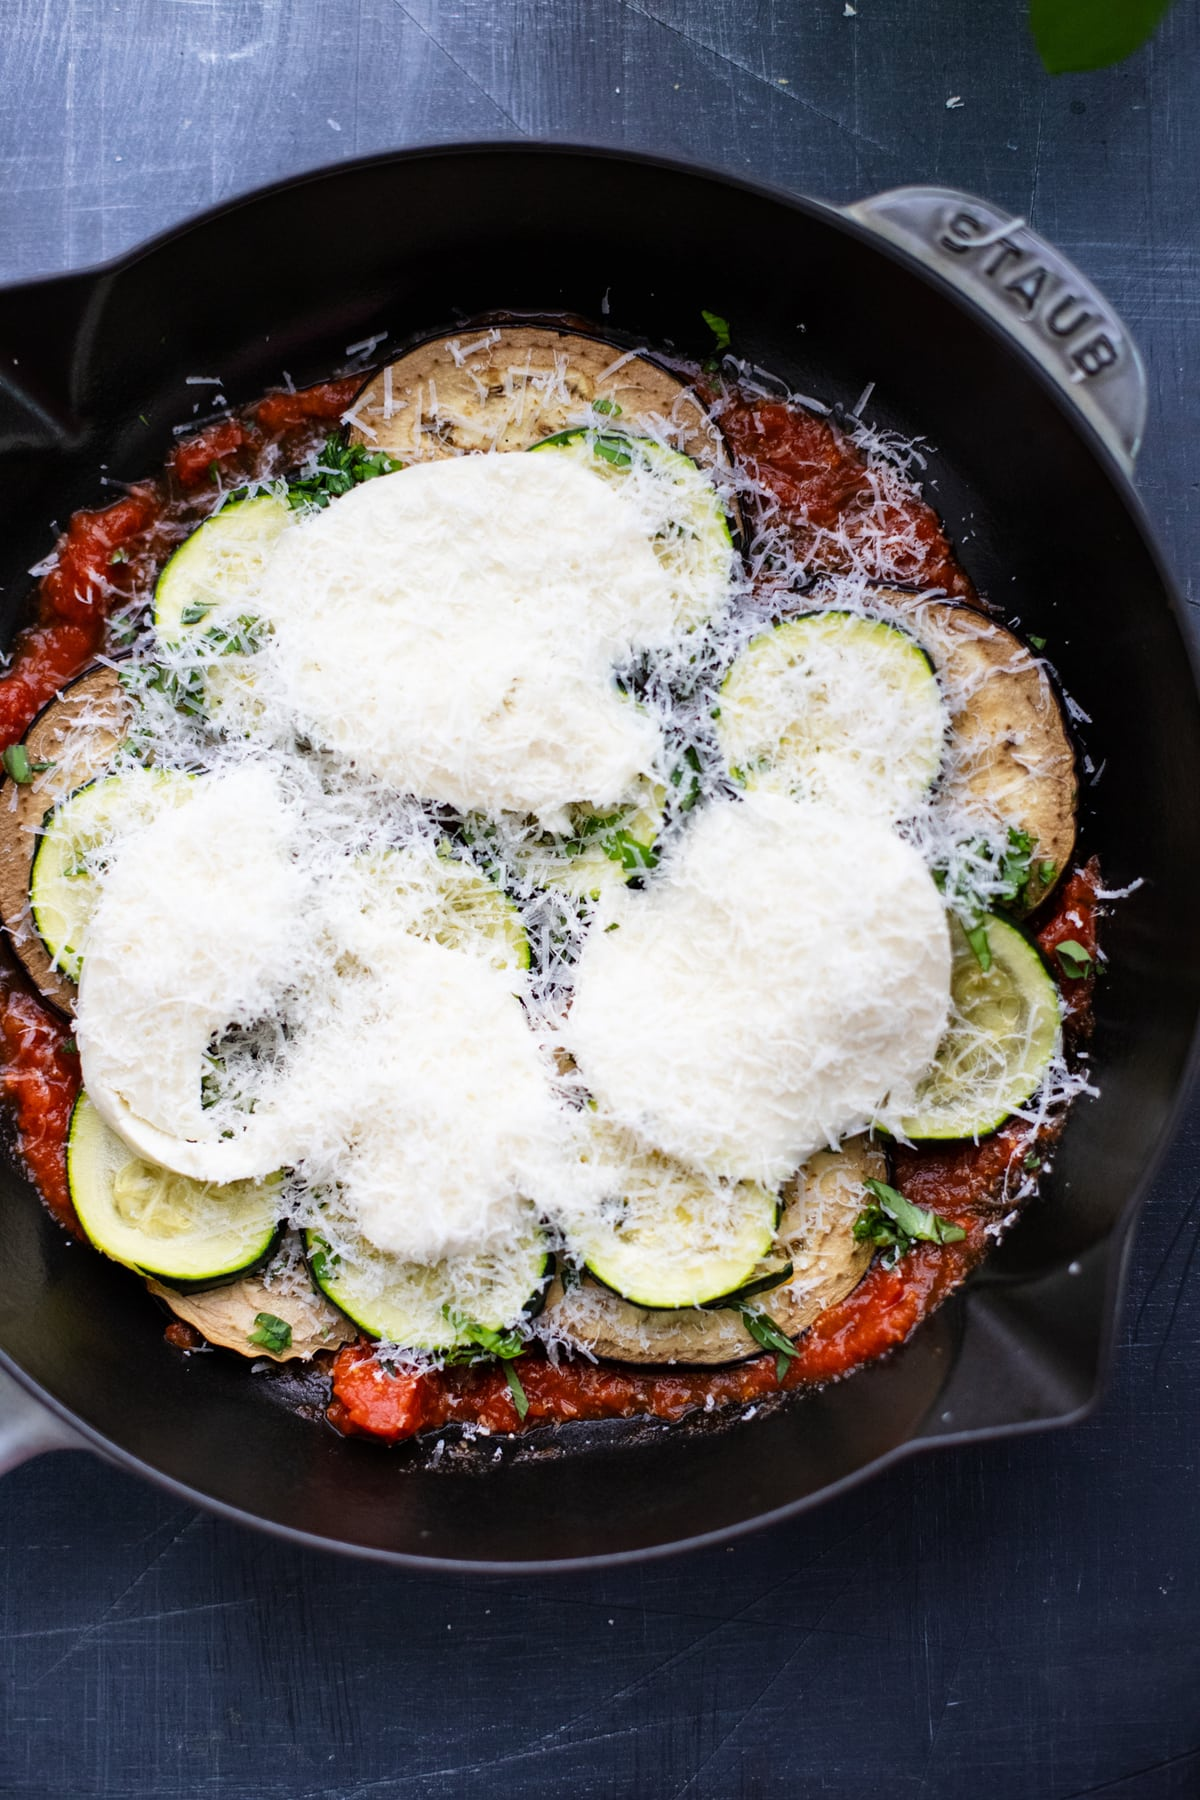 eggplant and zucchini lasagna topped with cheese in cast iron skillet.